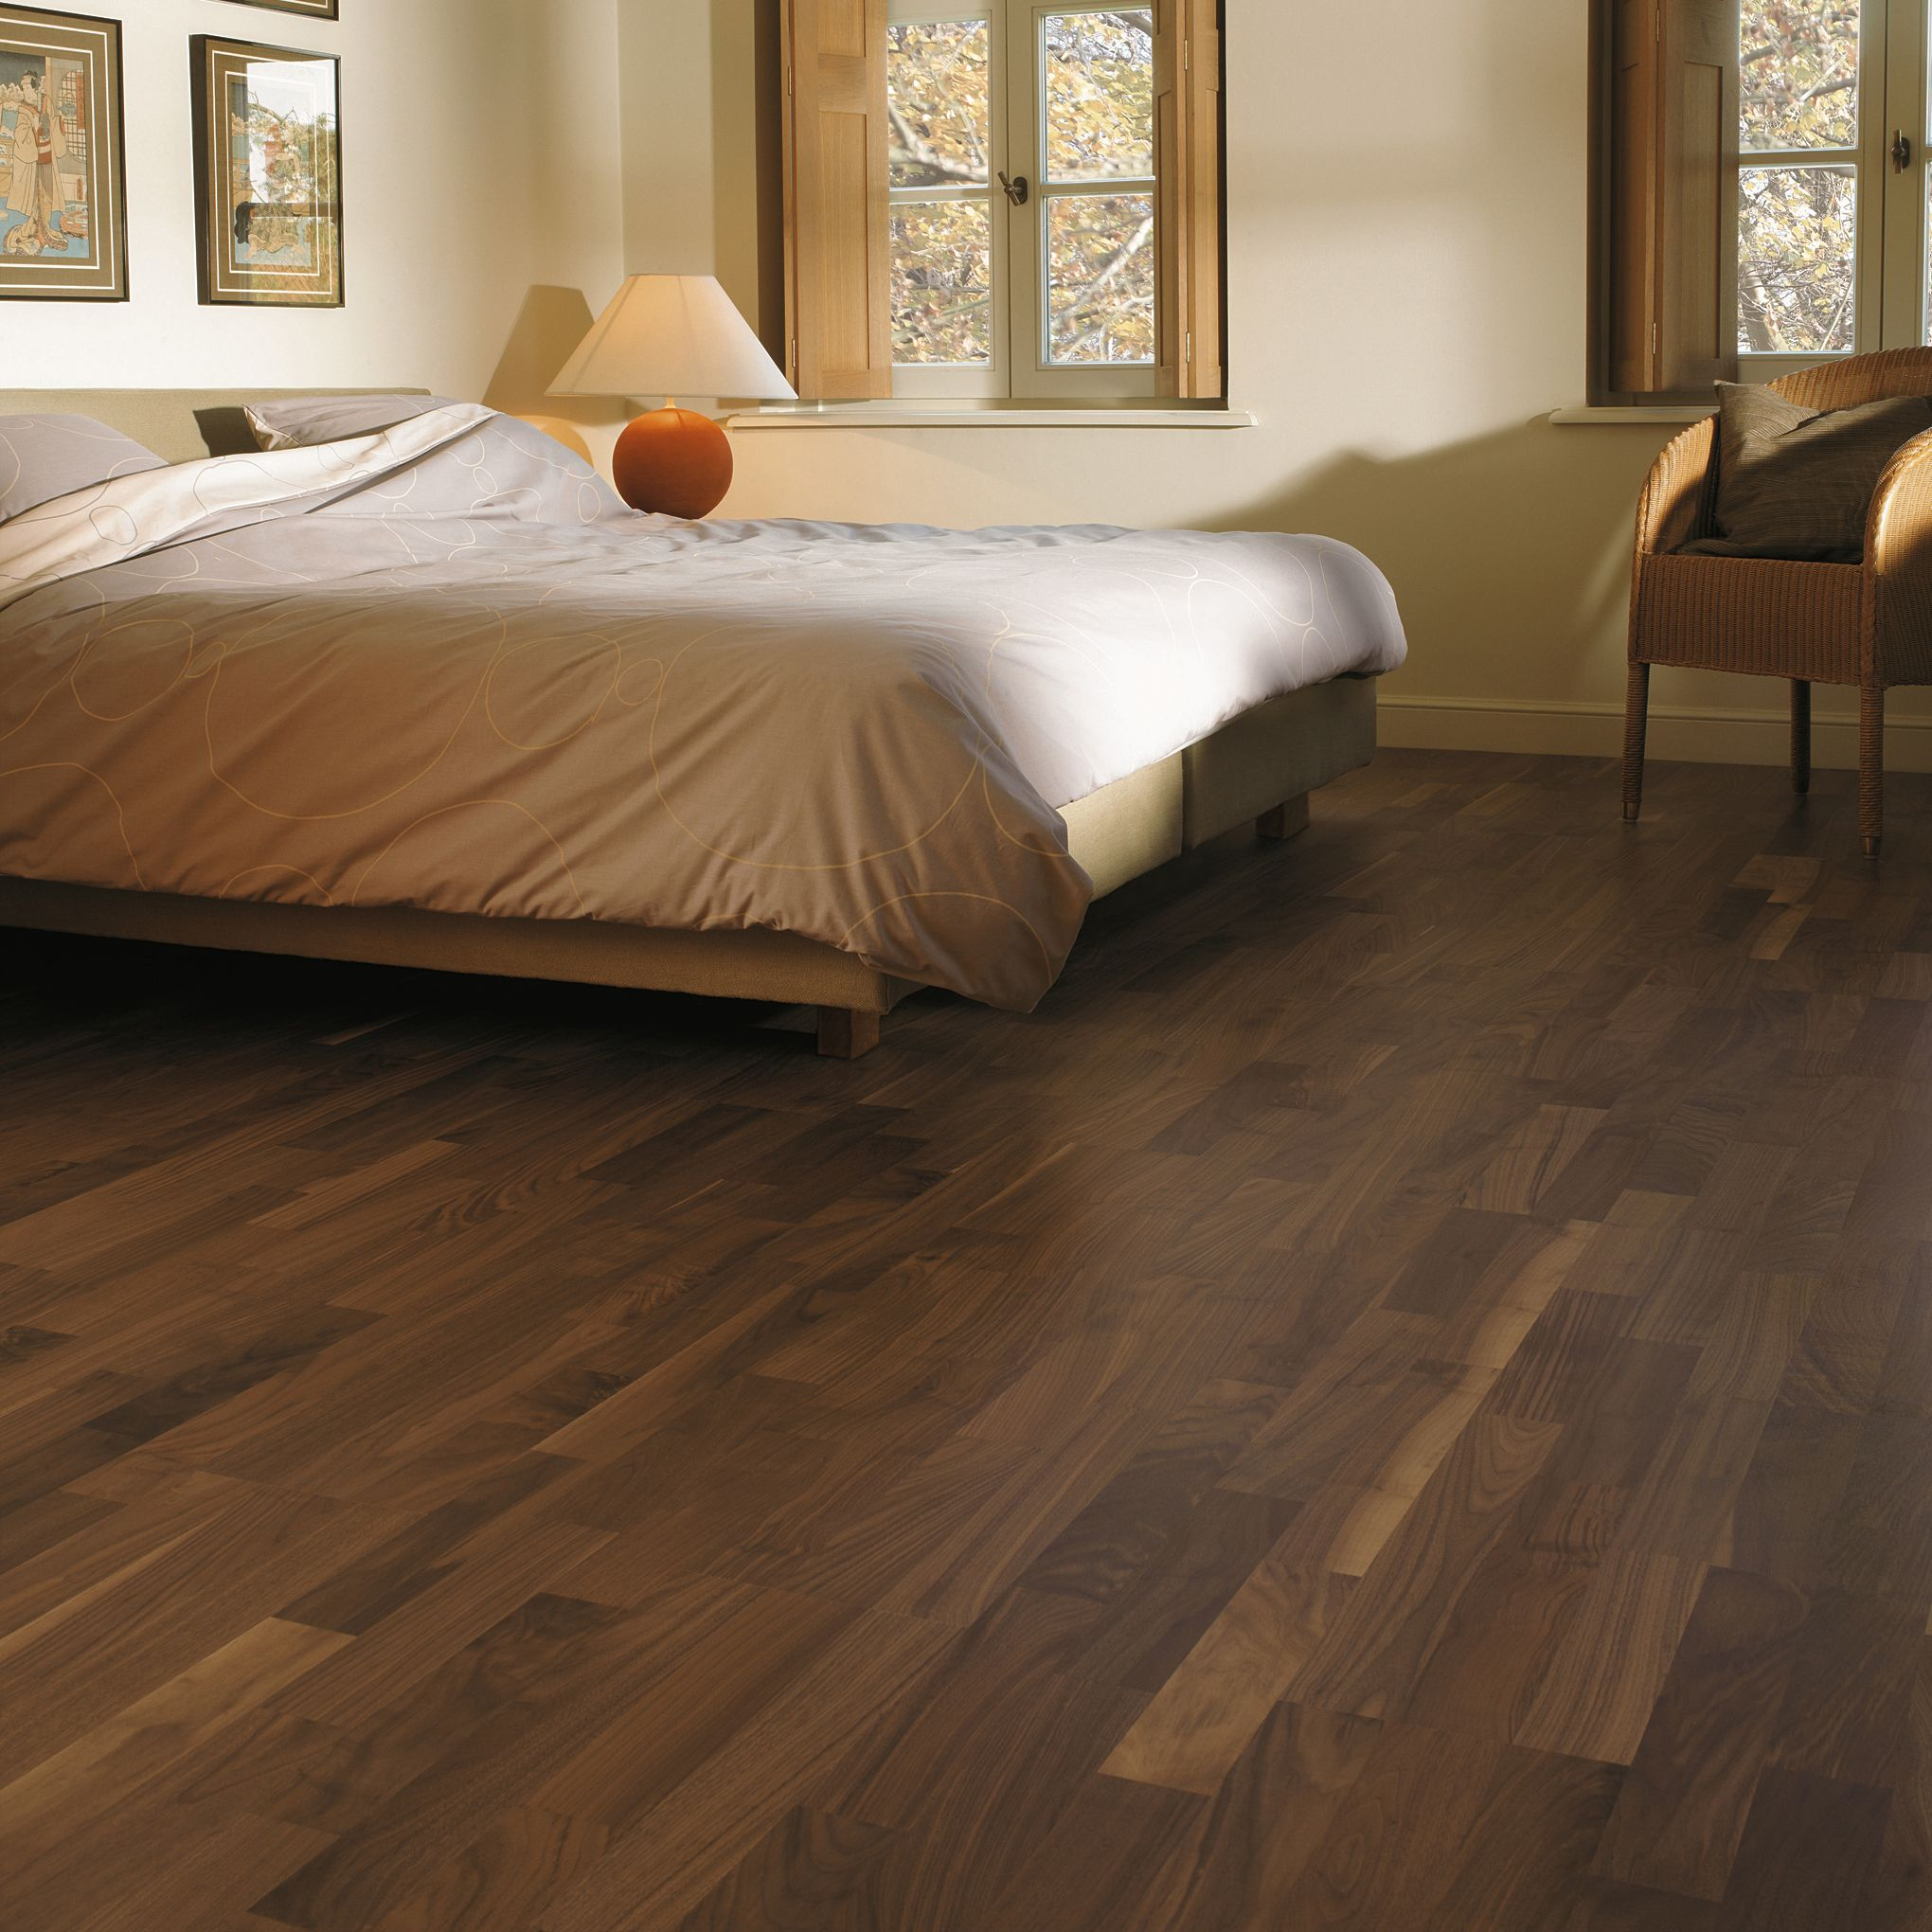 Alauda Classic Walnut Effect Long Plank Laminate Flooring 2 45 M² Pack Departments Diy At B Q